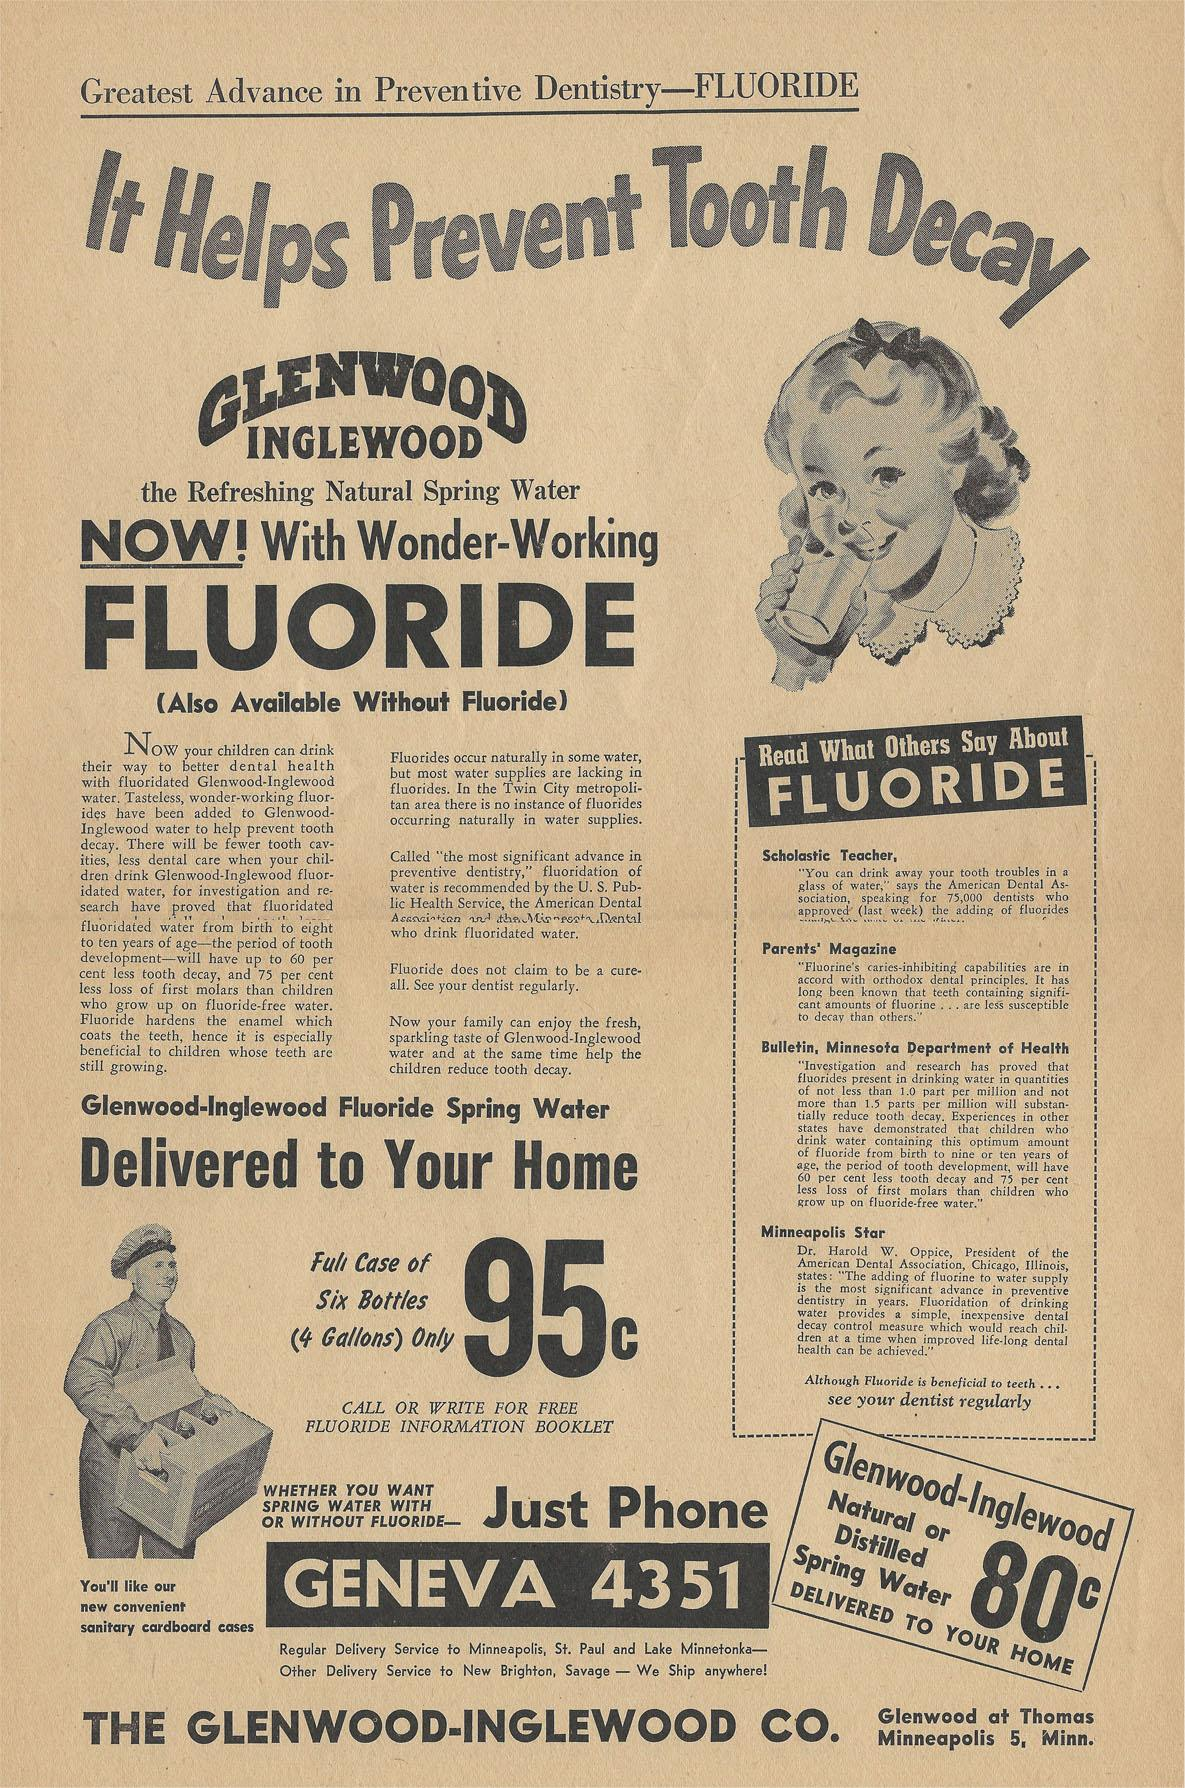 Back in the day, the Glenwood-Inglewood Company did a swell job at letting people know the benefits of drinking their fresh spring water.